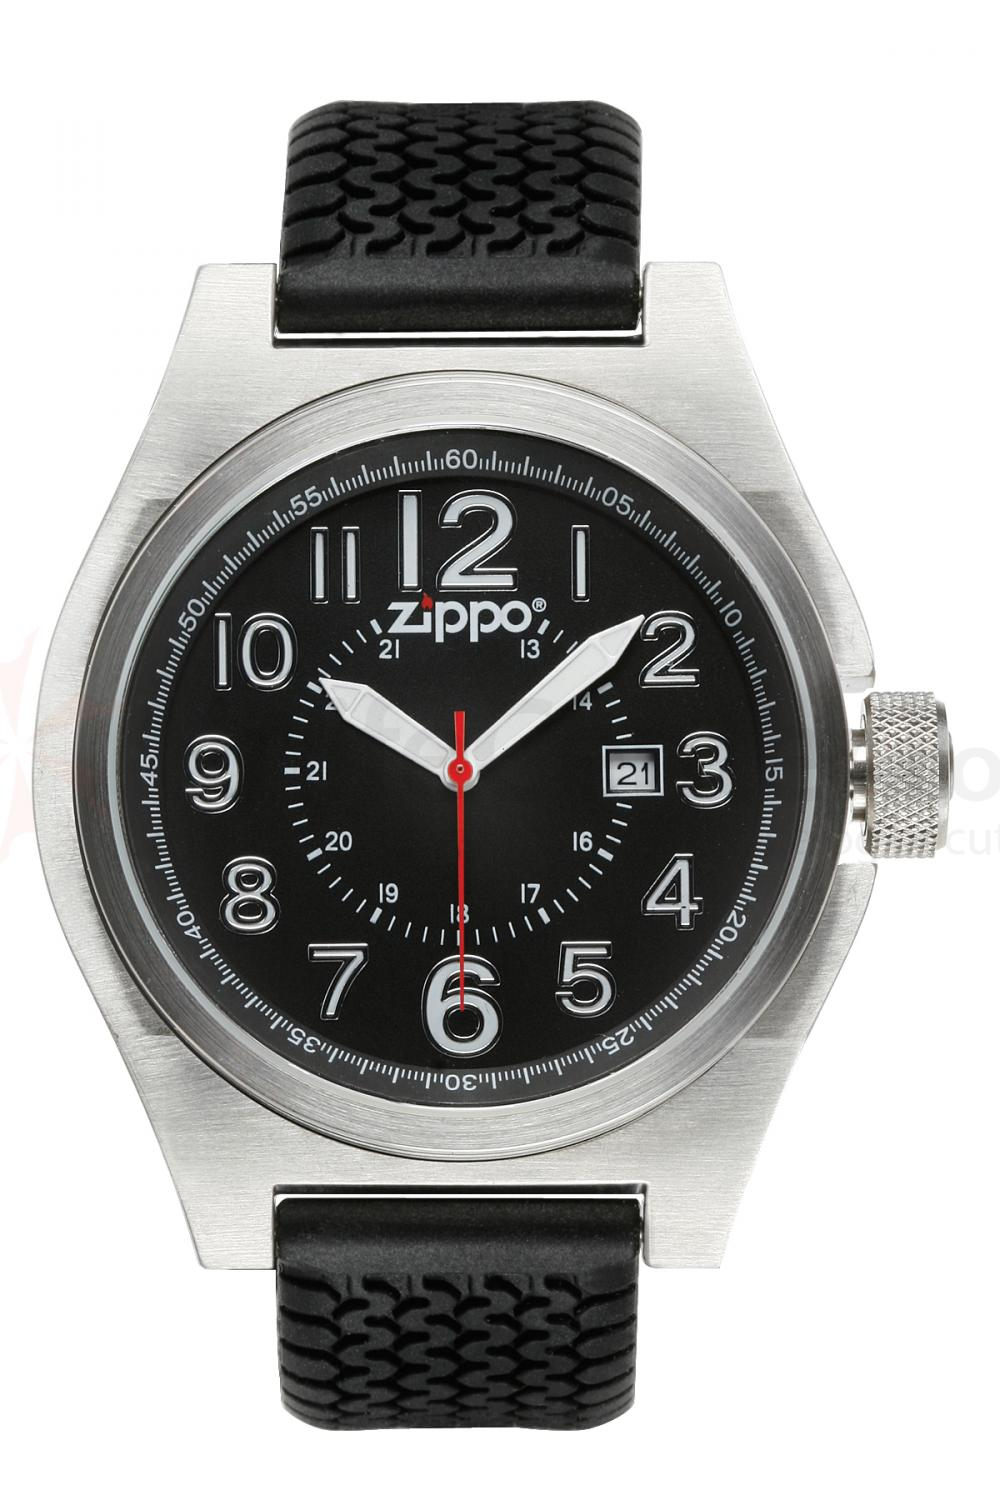 Zippo Watch Black Face / Black Silicone Band